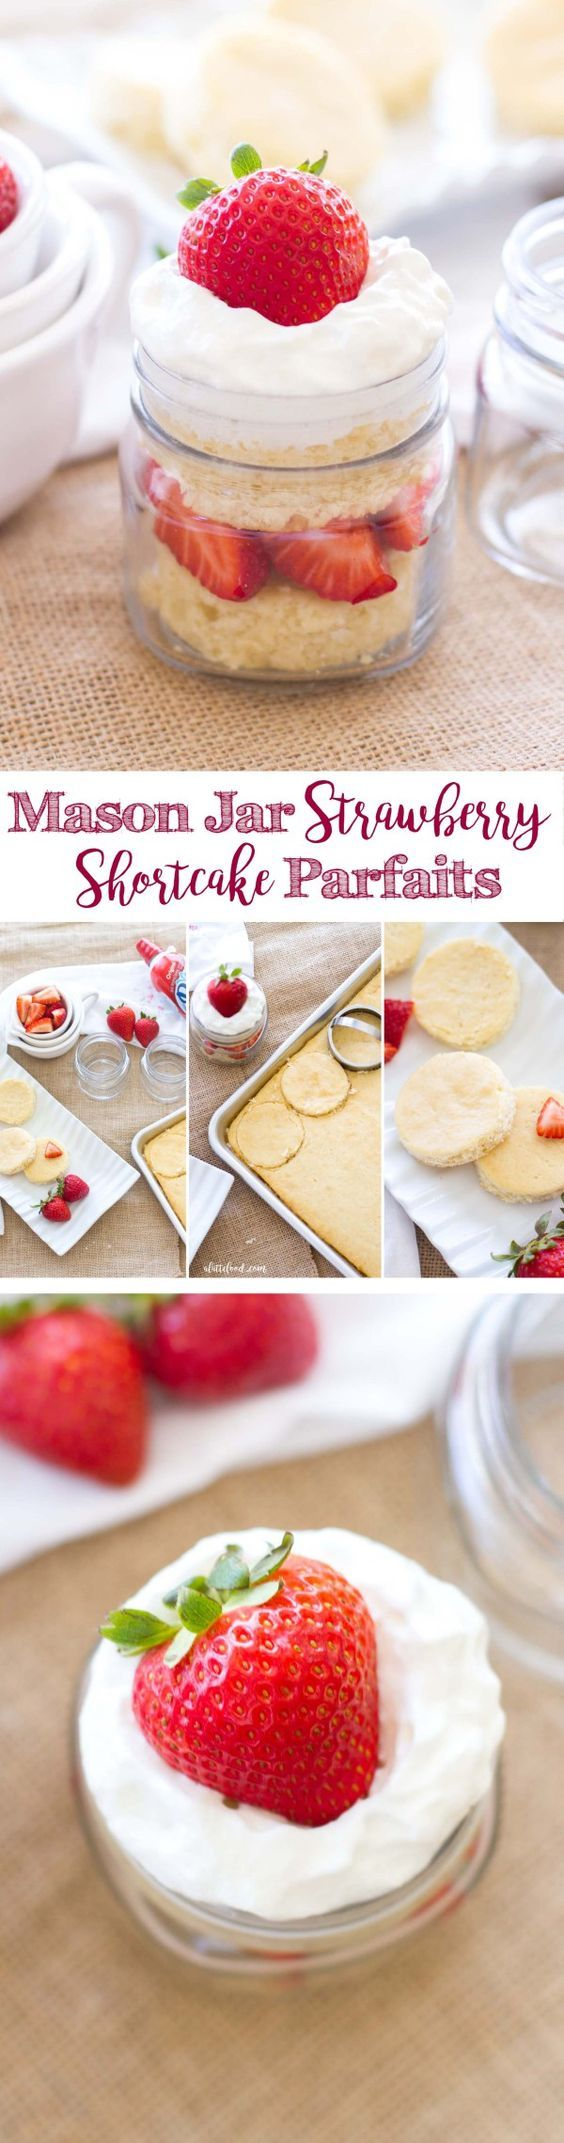 This easy dessert recipe is made with homemade shortcake, fresh strawberries, and whipped cream. These strawberry shortcake parfaits are layered in a mason jar, making them cute and portable!